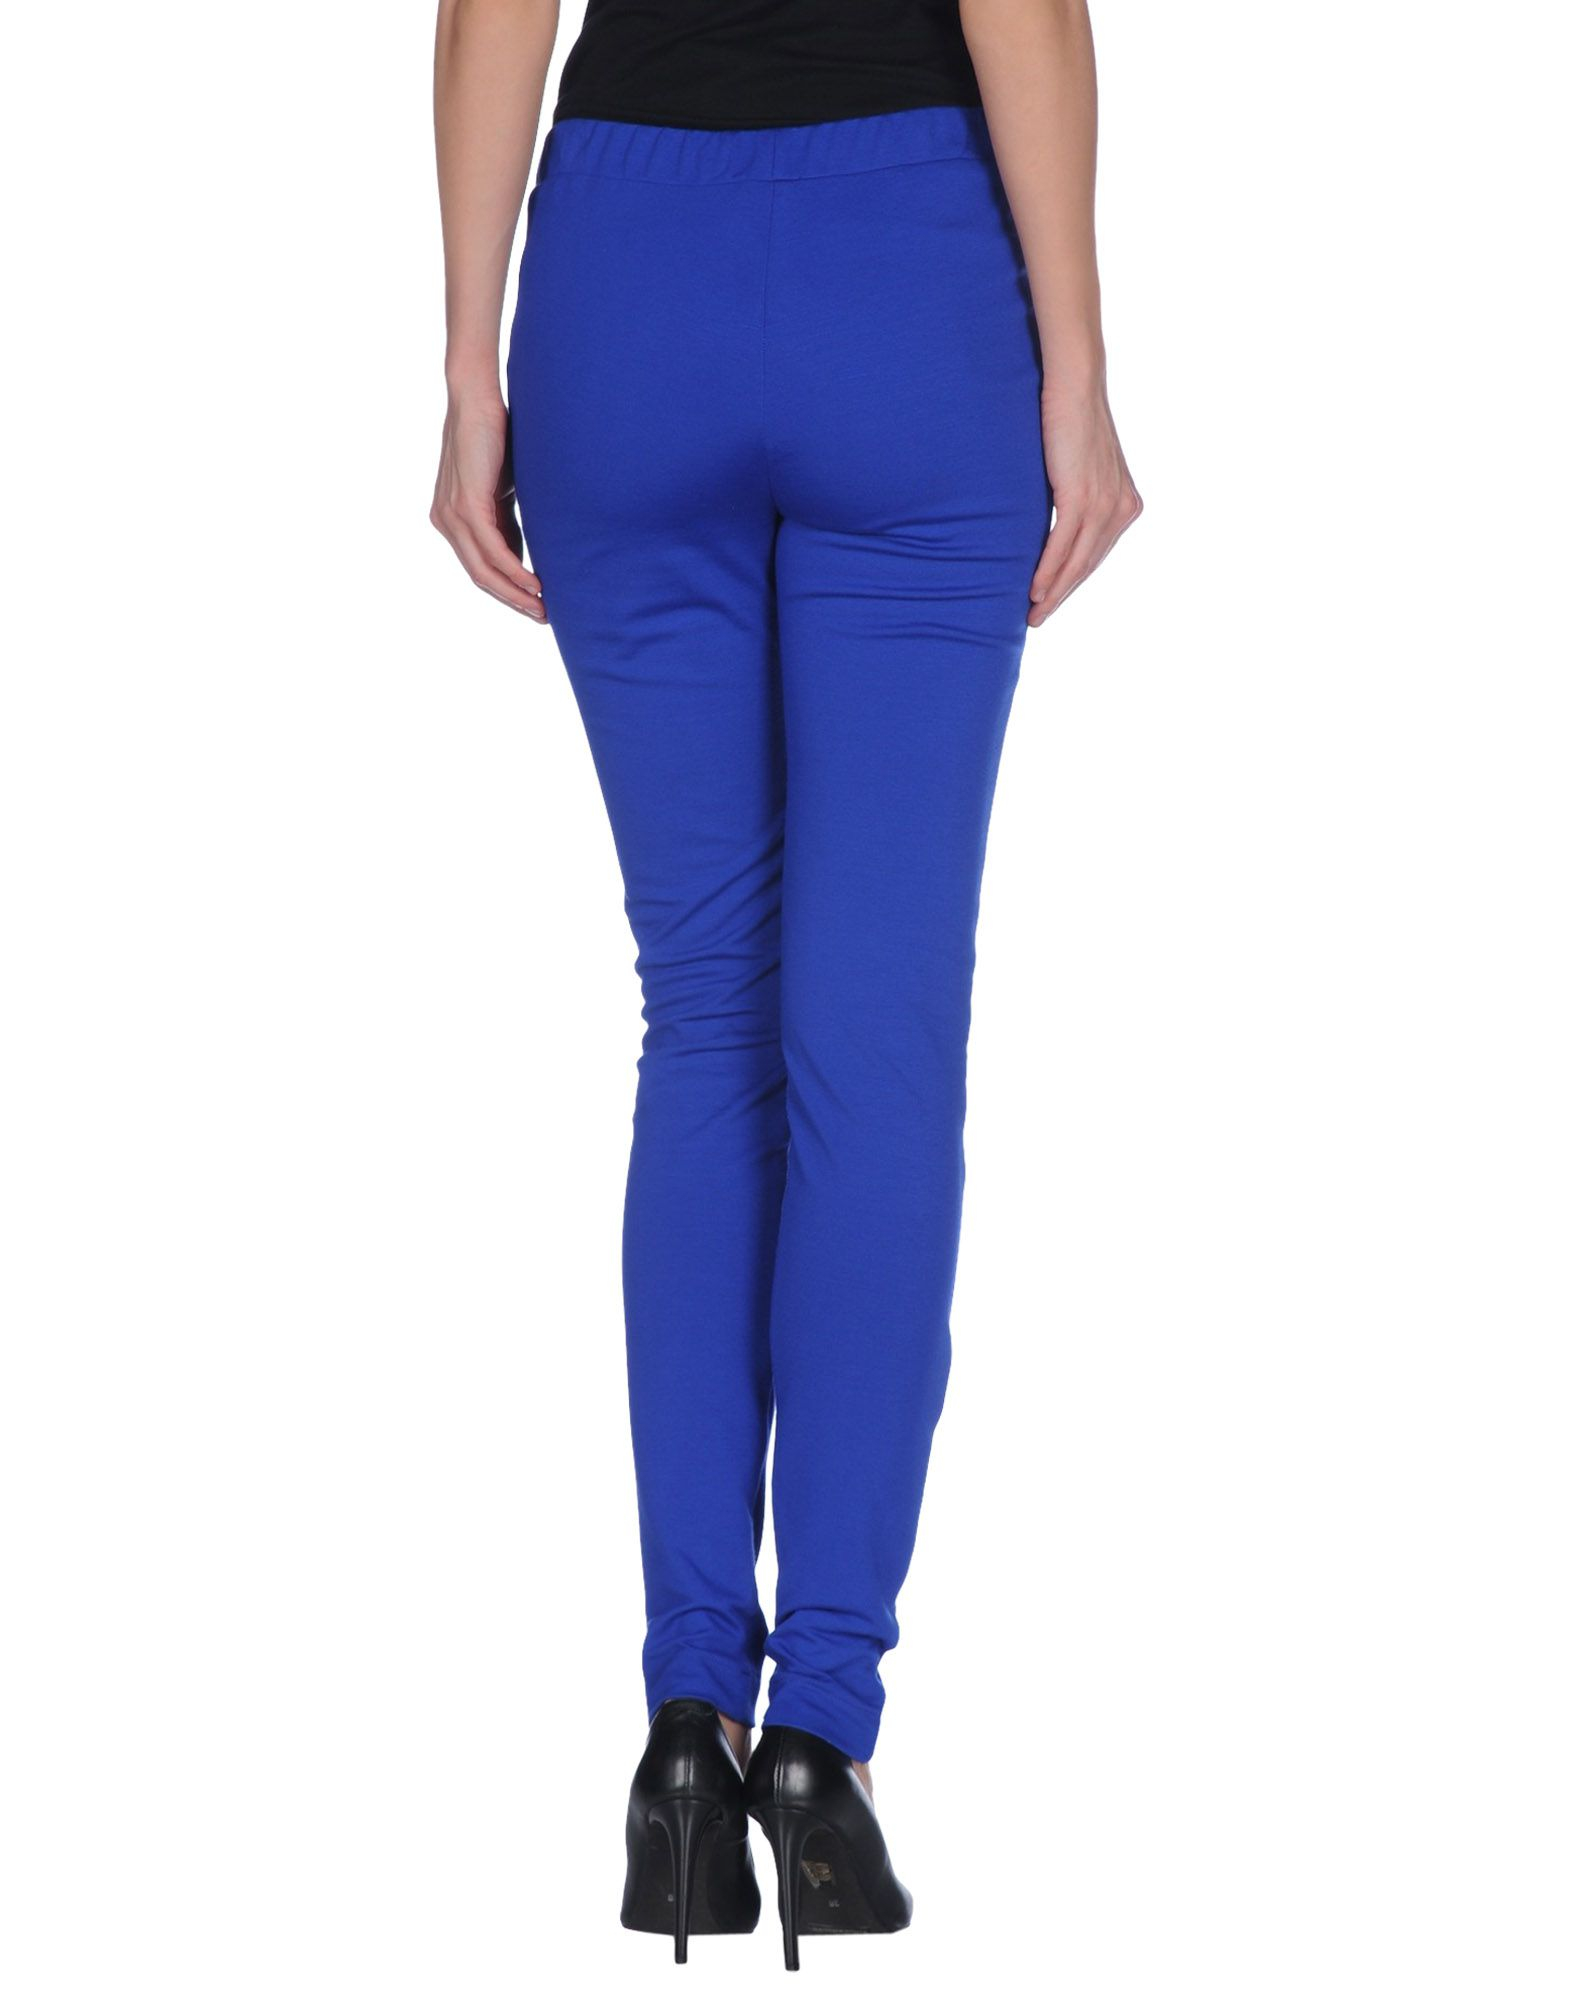 New Versace Pants Amp Jeans For Women  US Online Store